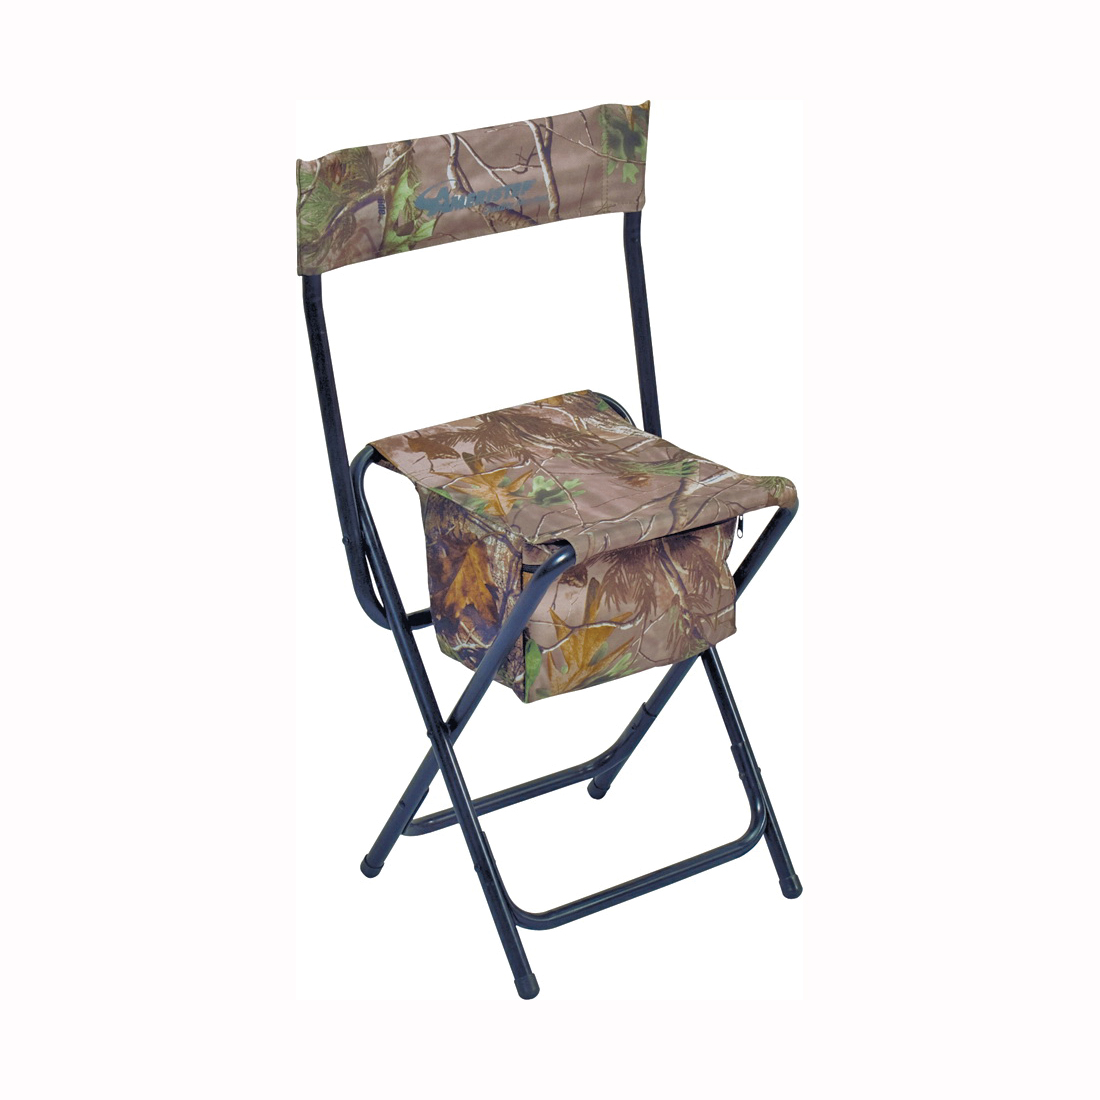 Picture of AMERISTEP 3RG1A014 High Back Chair, Heavy-Duty, Poly Fabric, Camouflage/Green